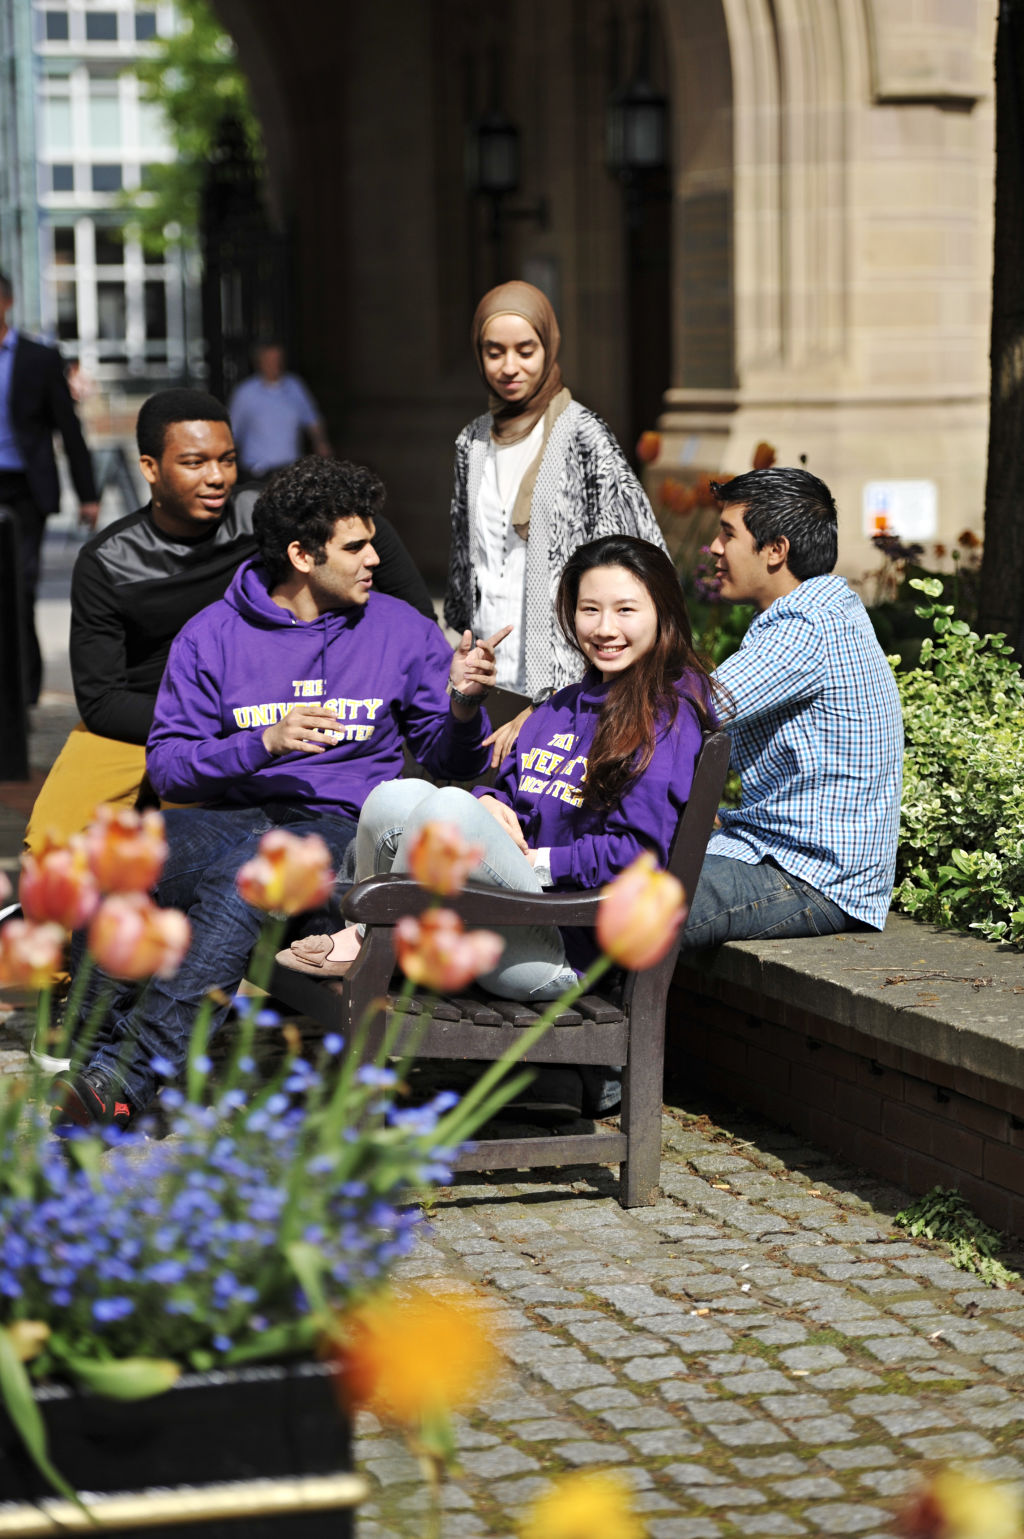 Students outside The University of Manchester